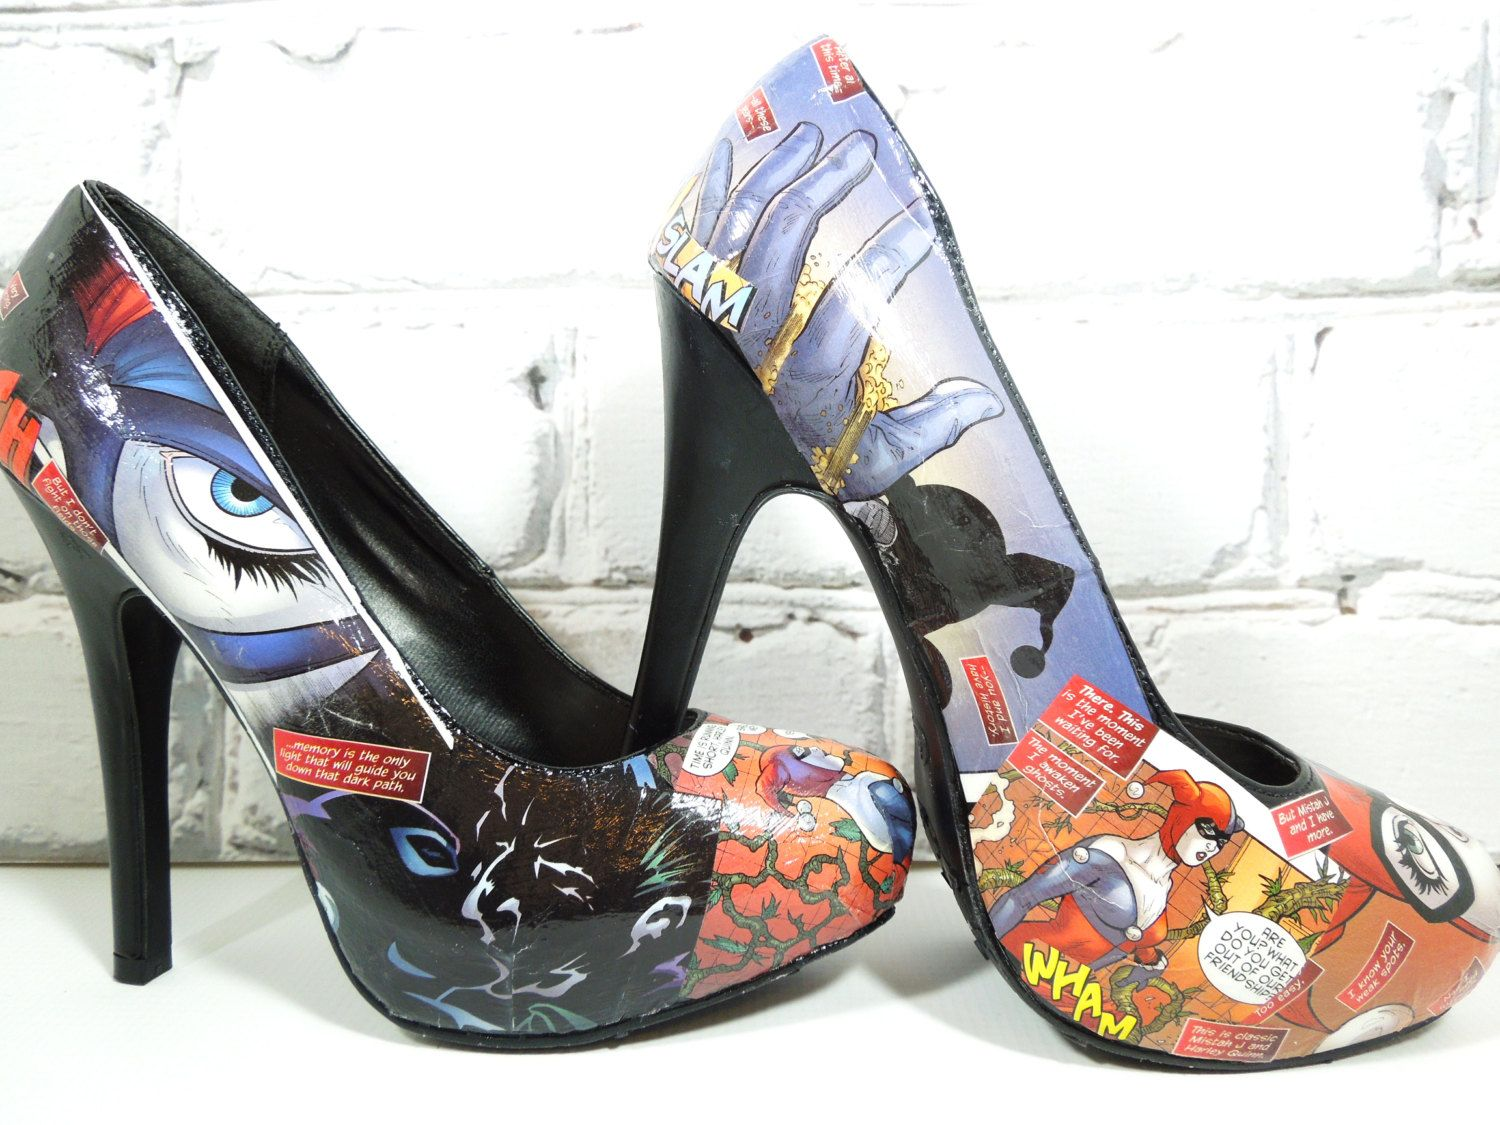 0b634a1d3a62 Just for fun... Harley Quinn and the Joker on my pumps. YAY!